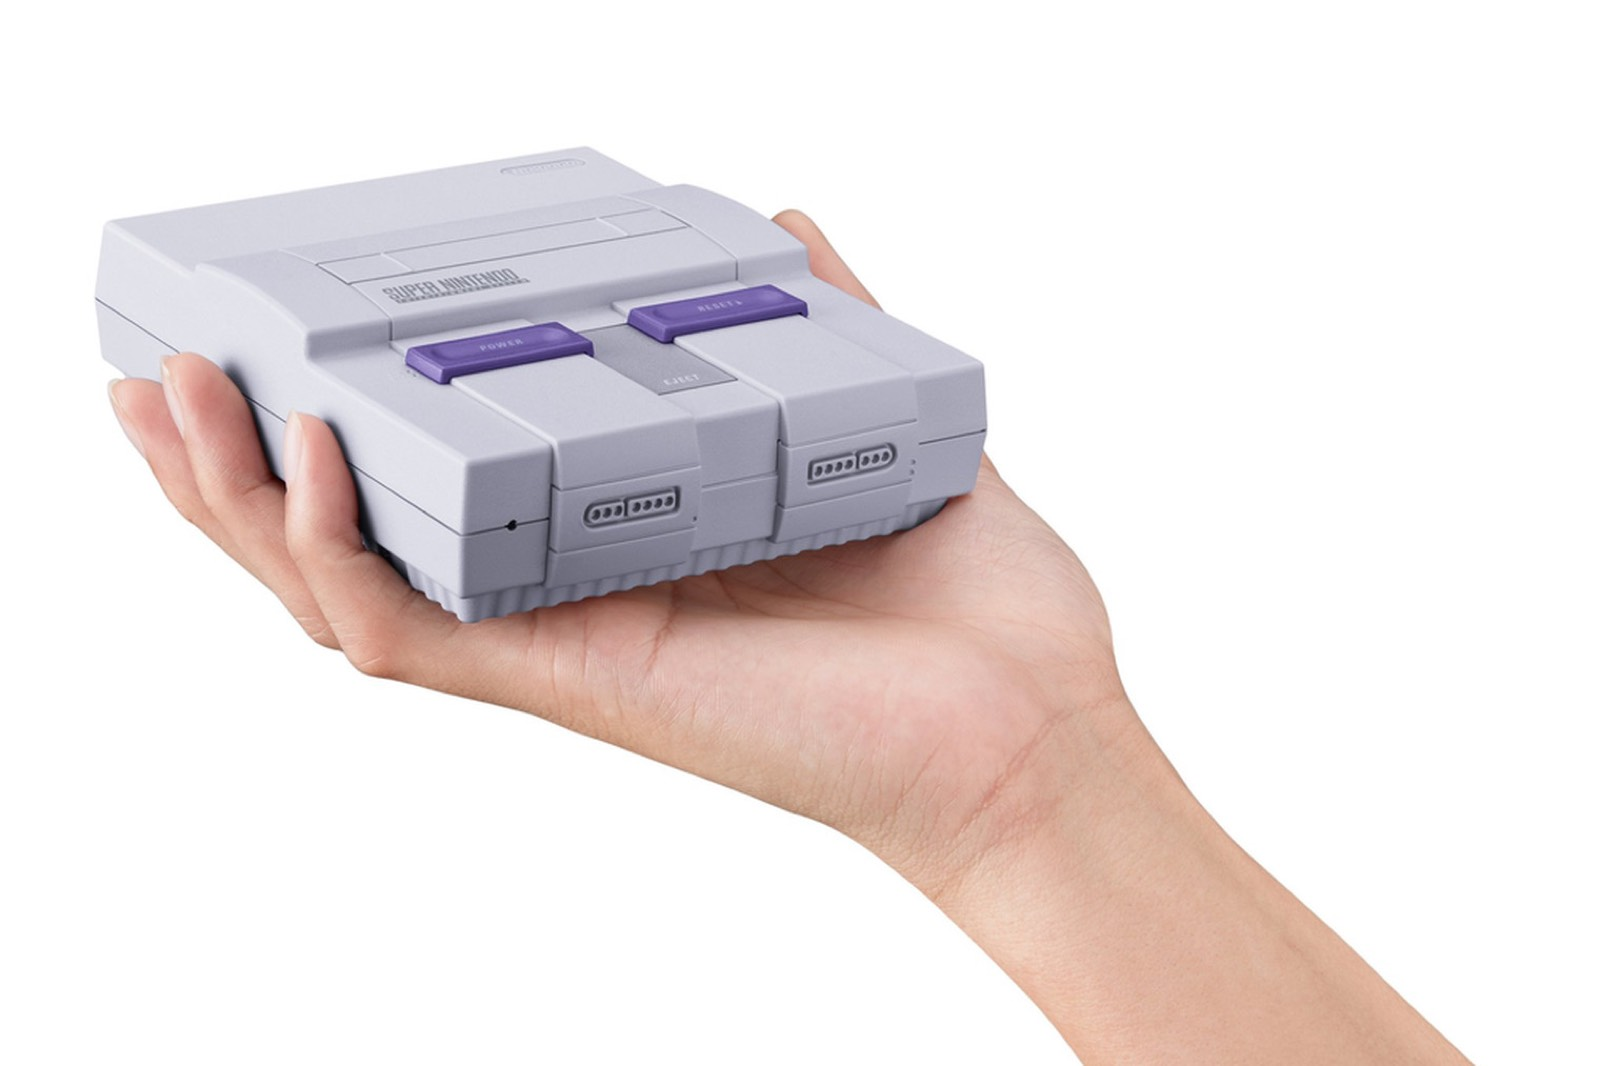 Nintendo Bringing Back Retro Games with Mini SNES Classic